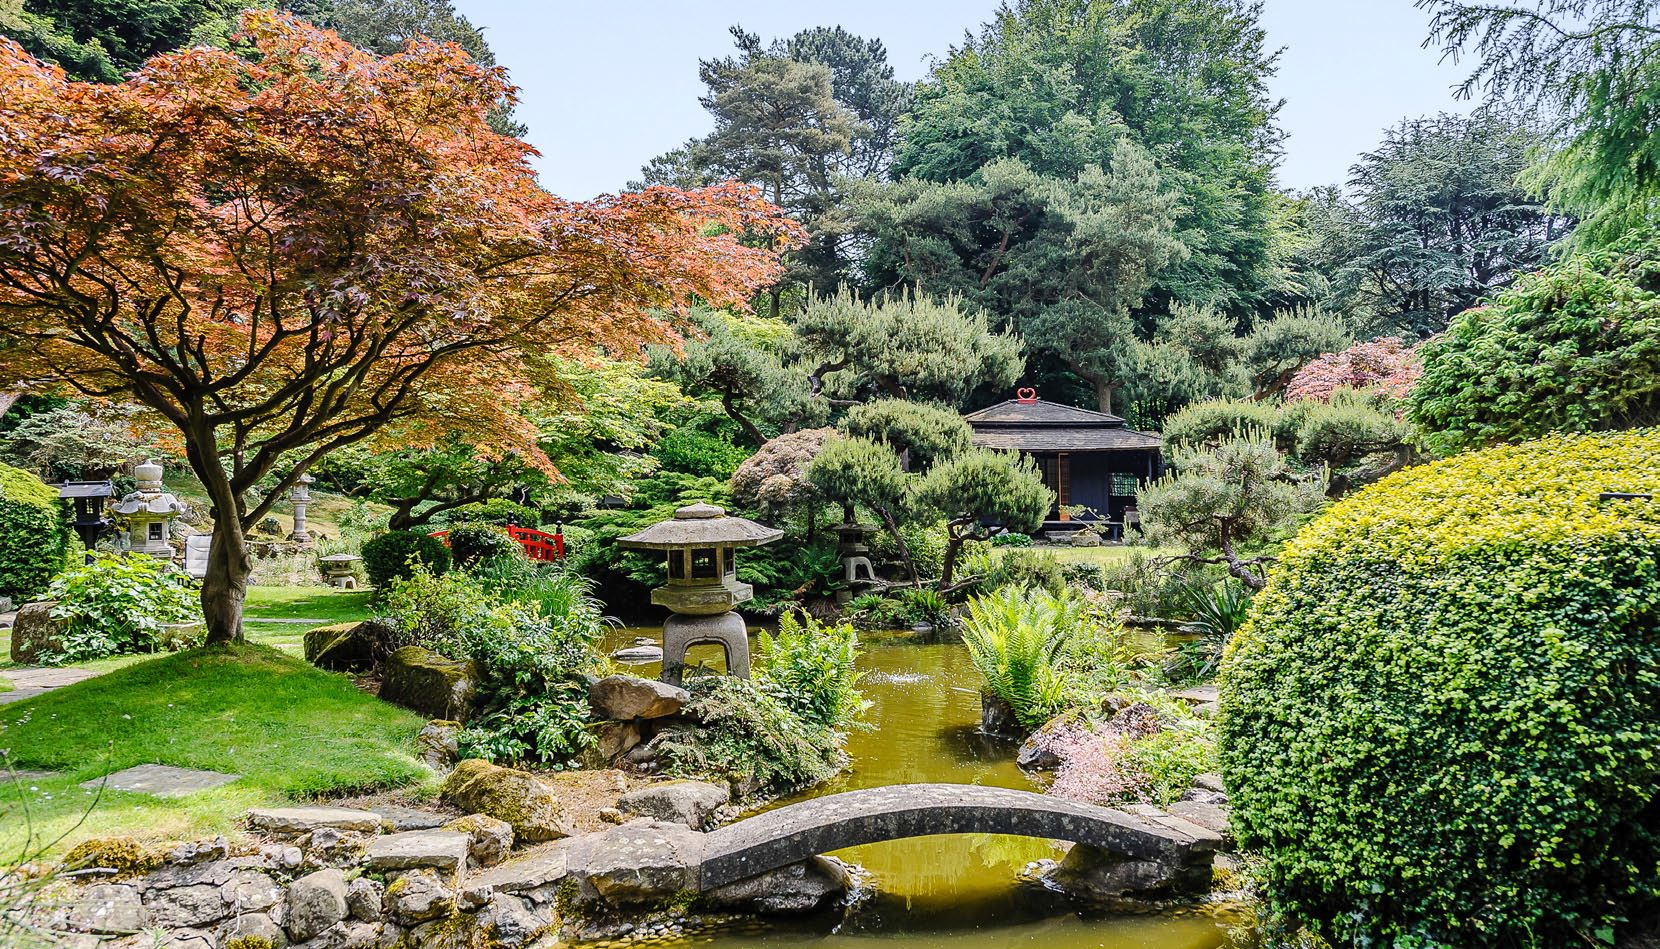 Cadpan survey the Garden House with Historic Japanese Gardens